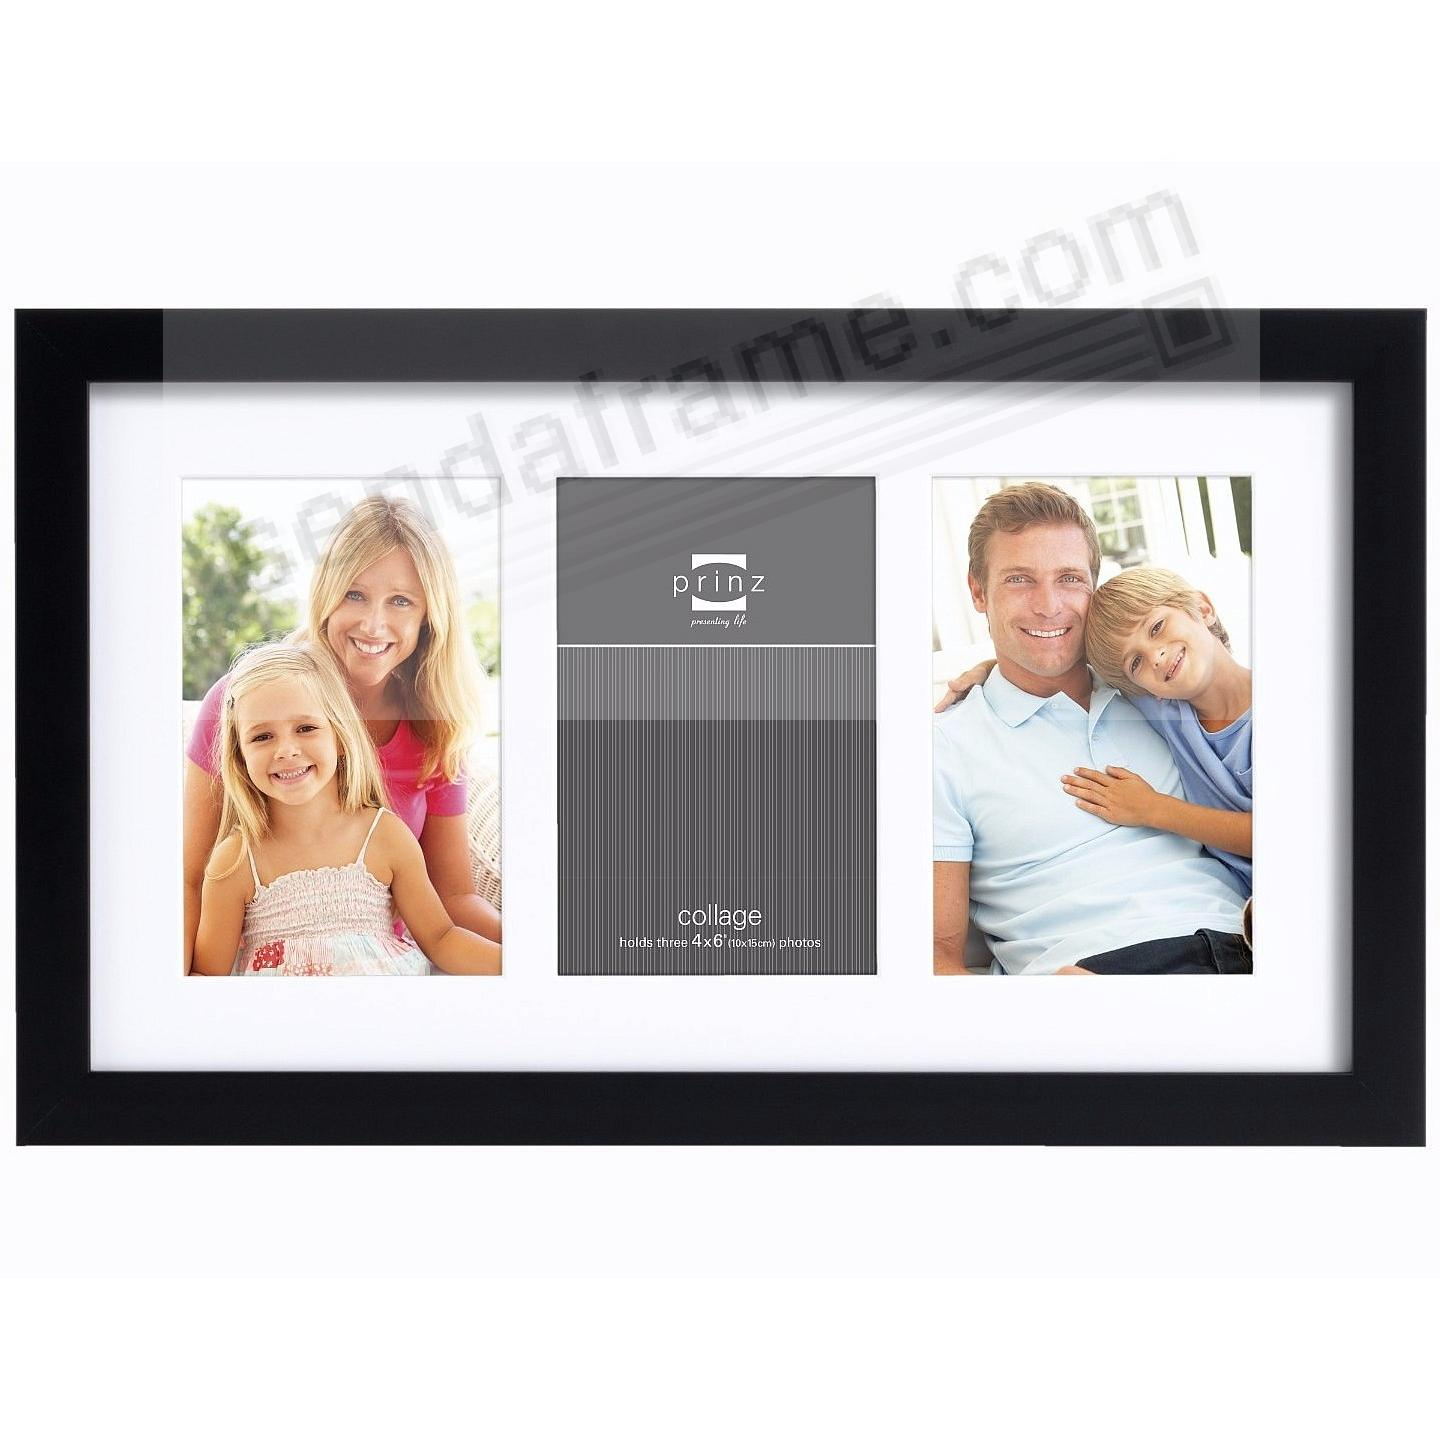 Matted black polystyrene collage frame for 3 - 4x6 prints by Prinz®